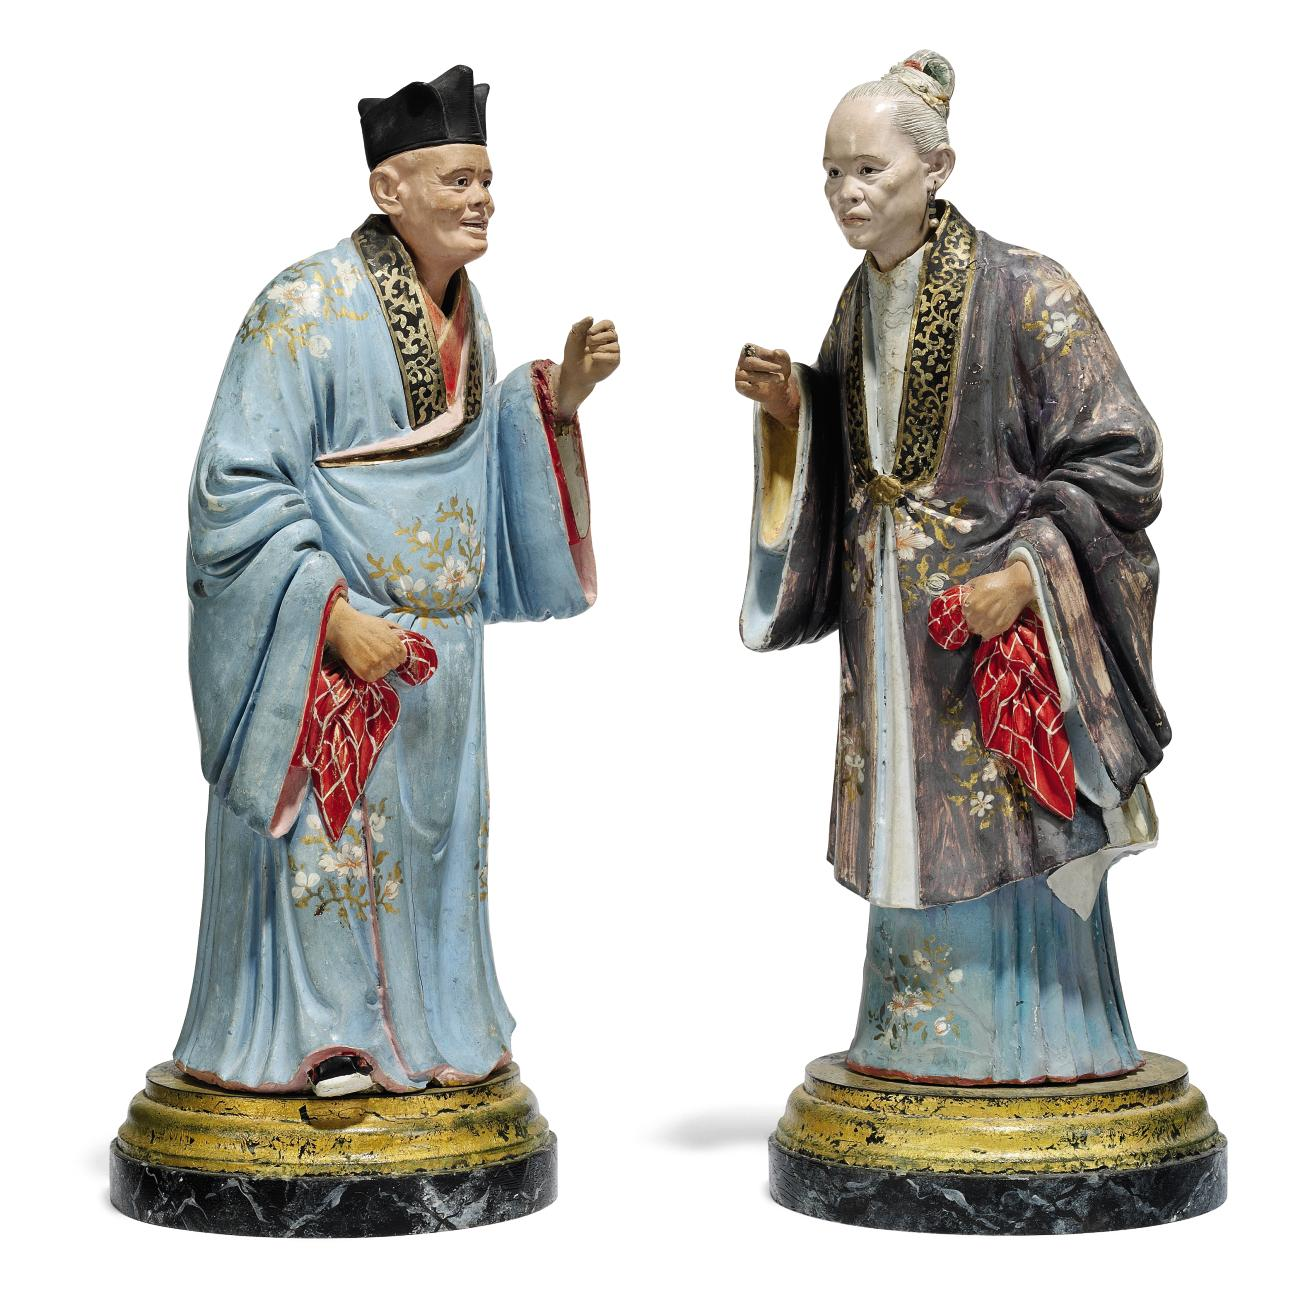 A PAIR OF PAINTED-PLASTER NODDING-HEAD FIGURES